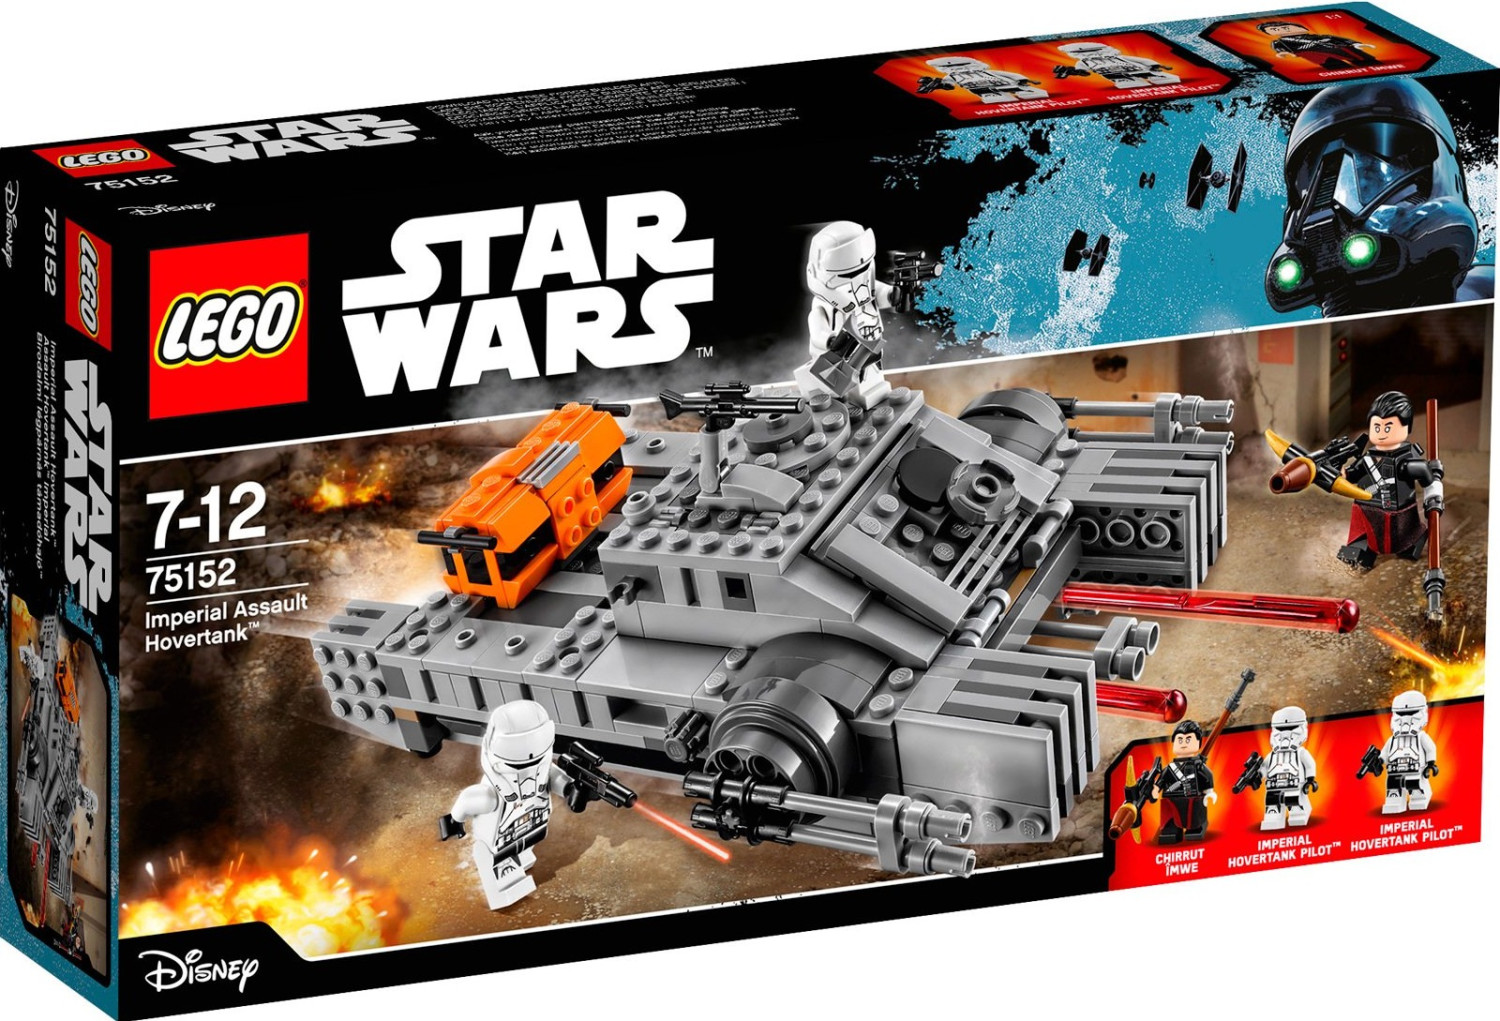 LEGO Star Wars - Imperial Assault Hovertank (75152)